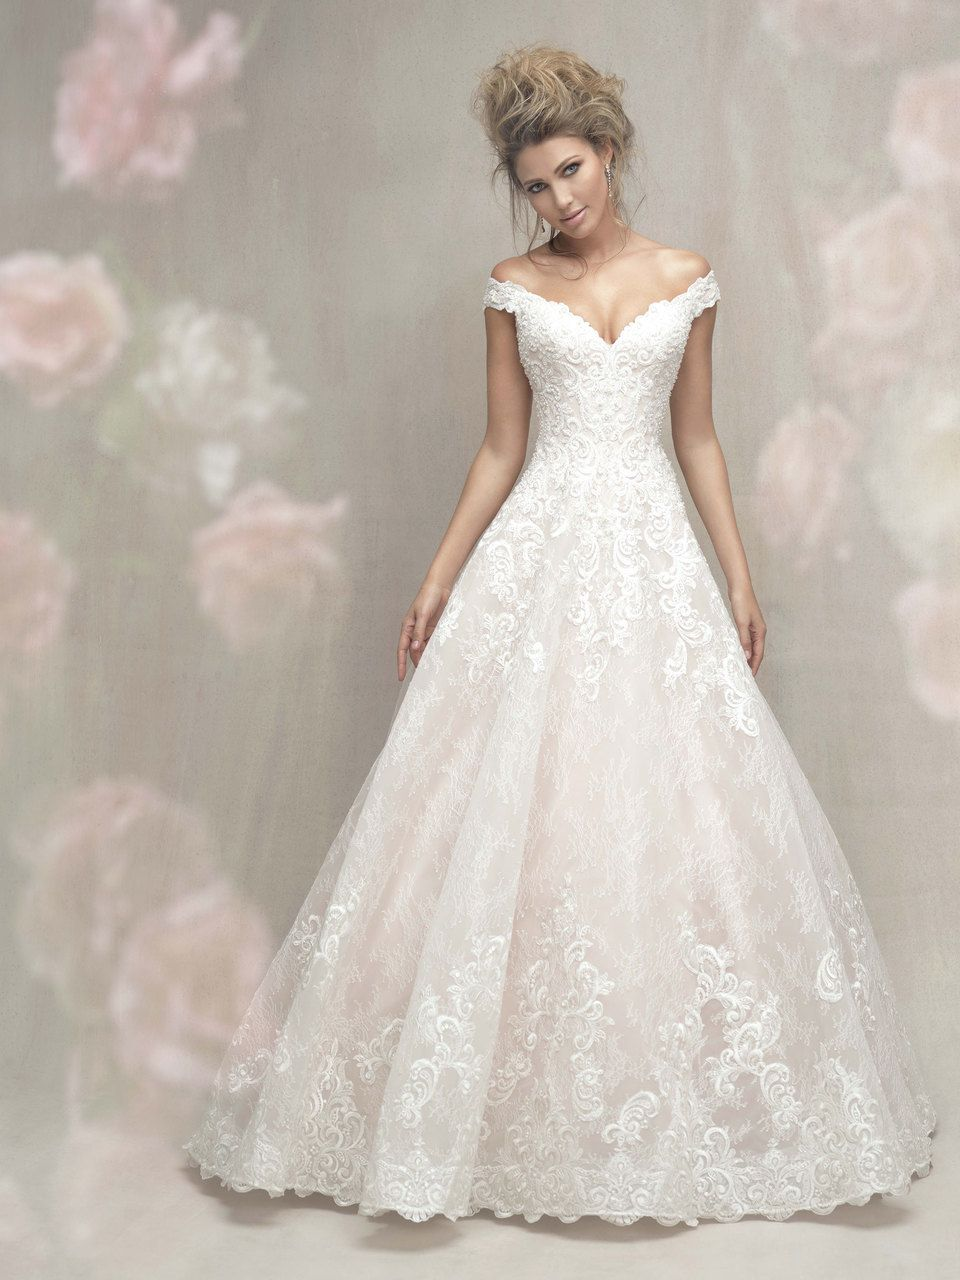 Bridals by Lori - Allure Couture Bridals 0134040, In store (http ...